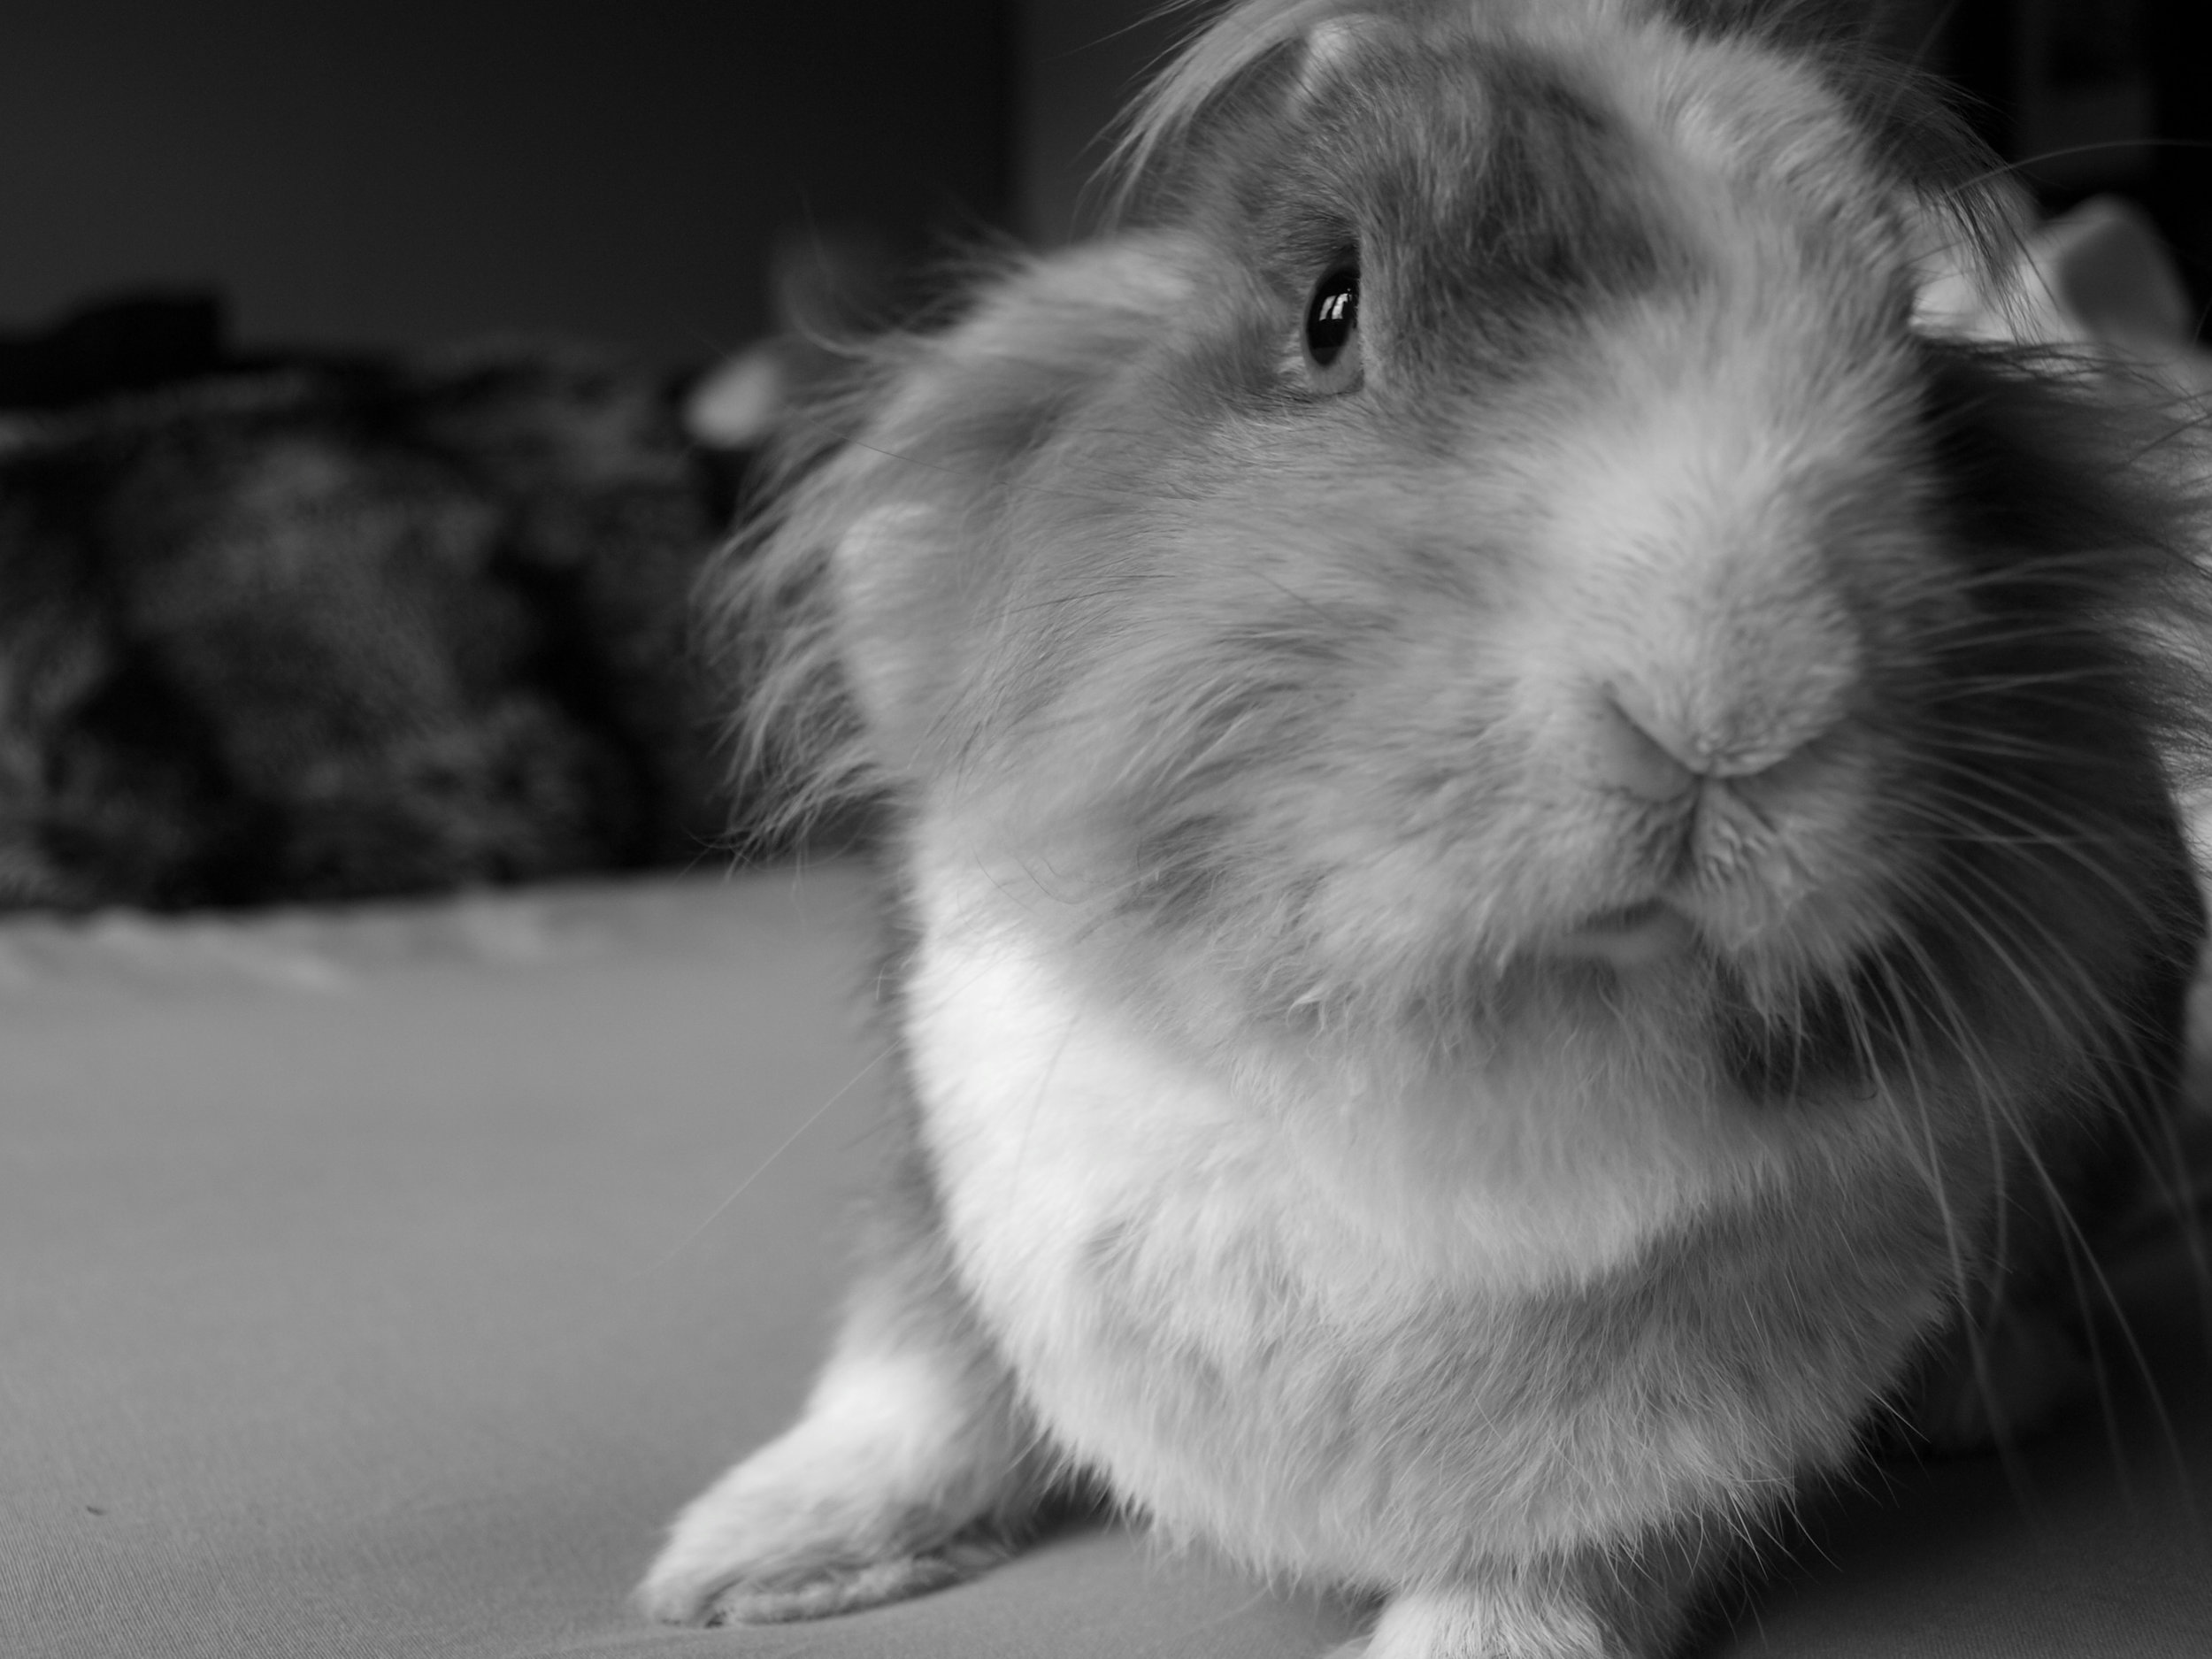 A Triptych of Bunny Portraits 1